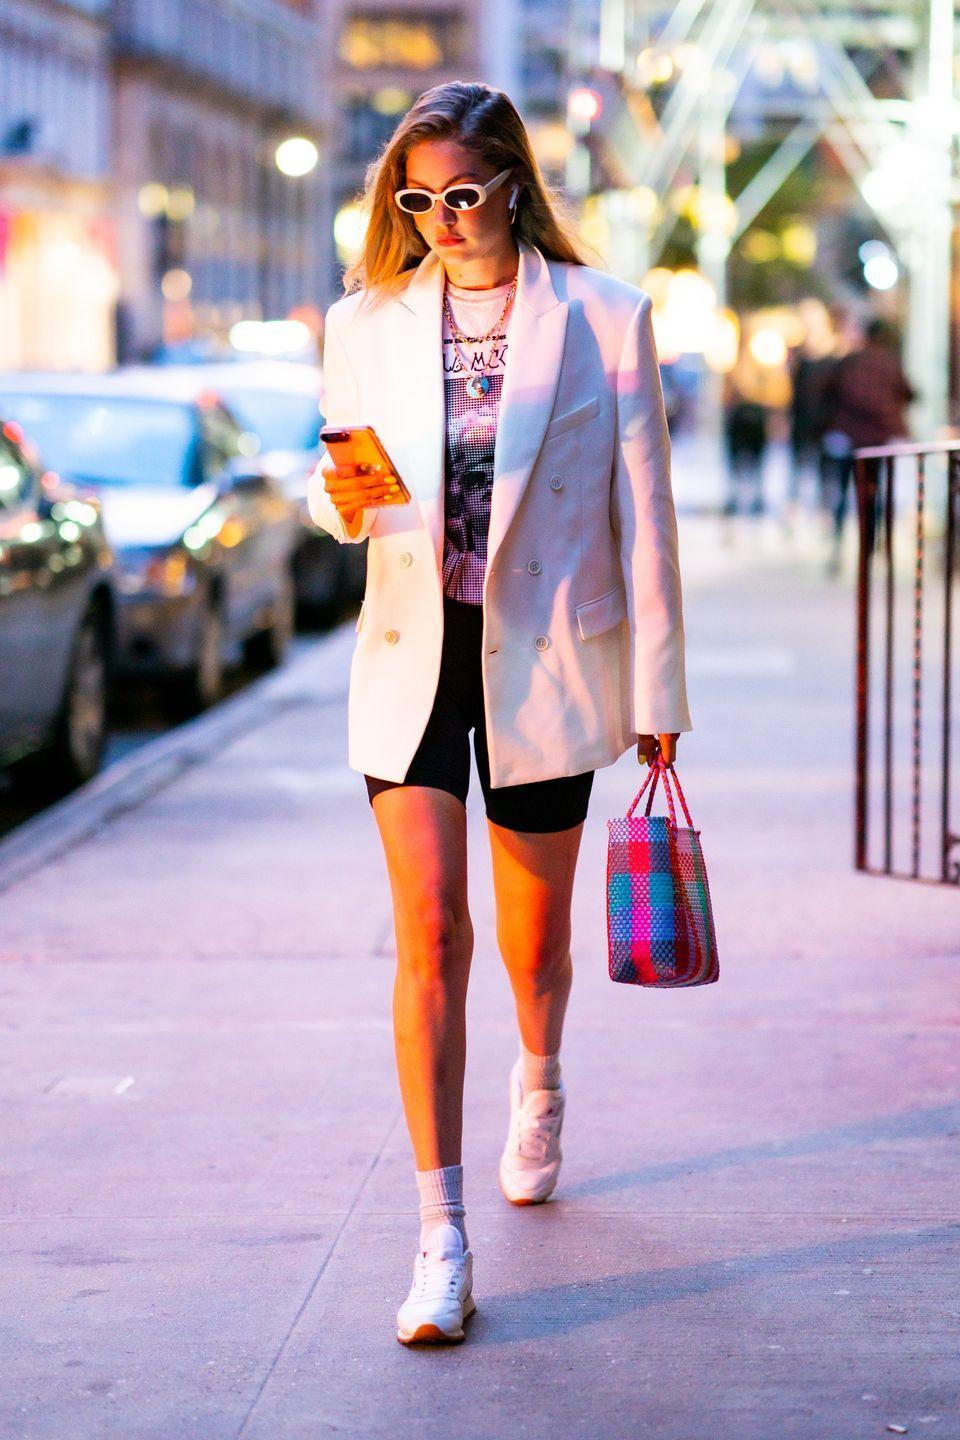 """<p>In a white blazer, a graphic tee, <a href=""""https://www.aritzia.com/us/en/product/atmosphere-short-7%22/70500.html?country=us"""" rel=""""nofollow noopener"""" target=""""_blank"""" data-ylk=""""slk:Aritzia's black Tna Atmosphere Short 7&quot;"""" class=""""link rapid-noclick-resp"""">Aritzia's black Tna Atmosphere Short 7""""</a>, white sunnies, white sneakers, and layered gold necklaces.</p>"""